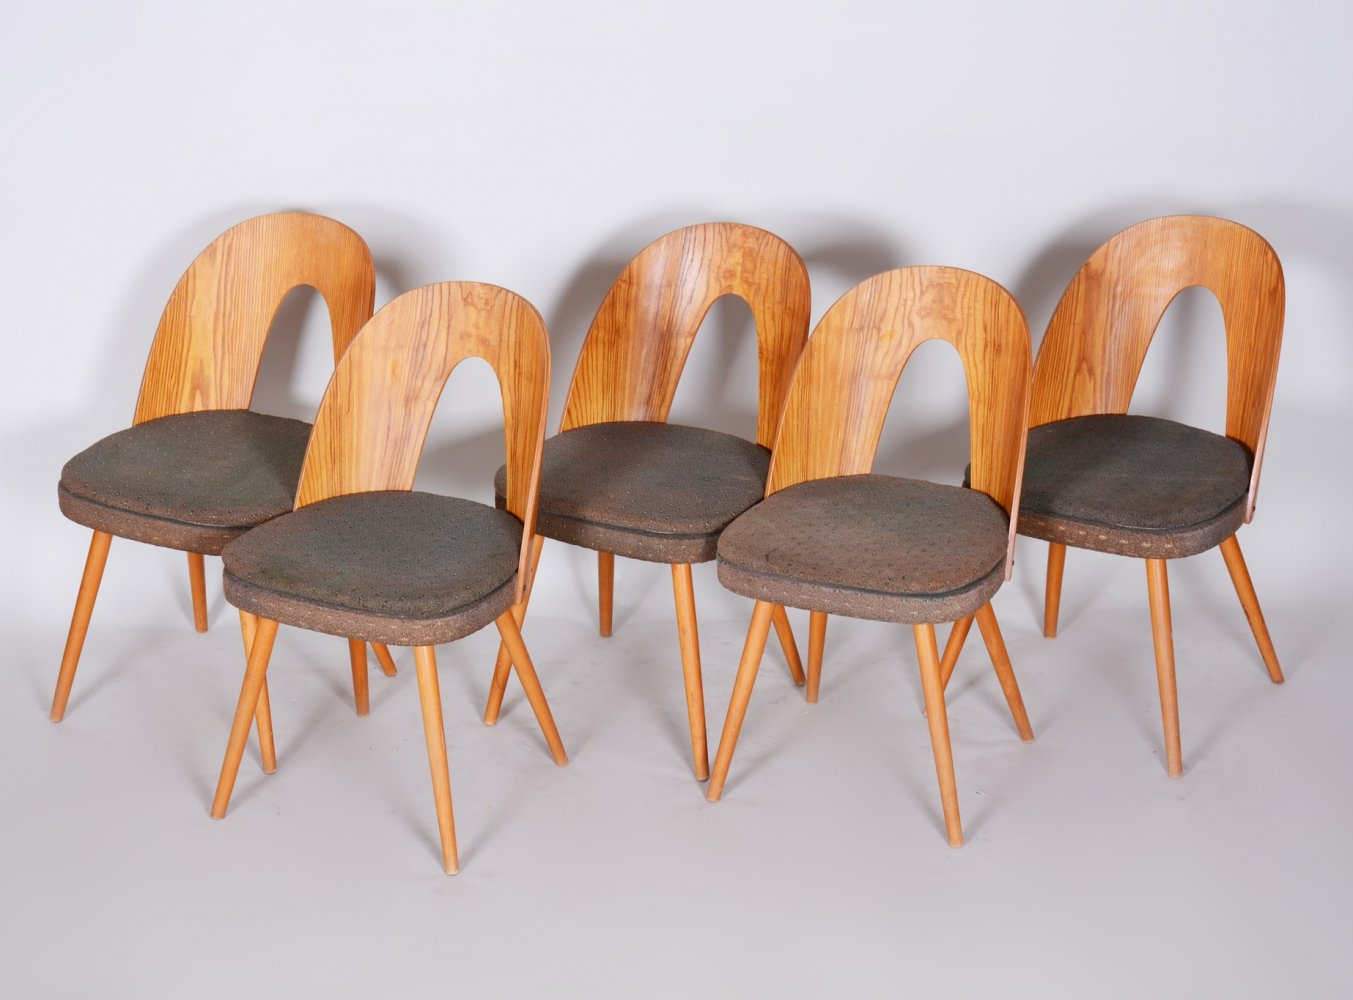 Set of 5 Czech Brown Ash Mid-century Chairs by Architect Antonín Šuman, 1950s